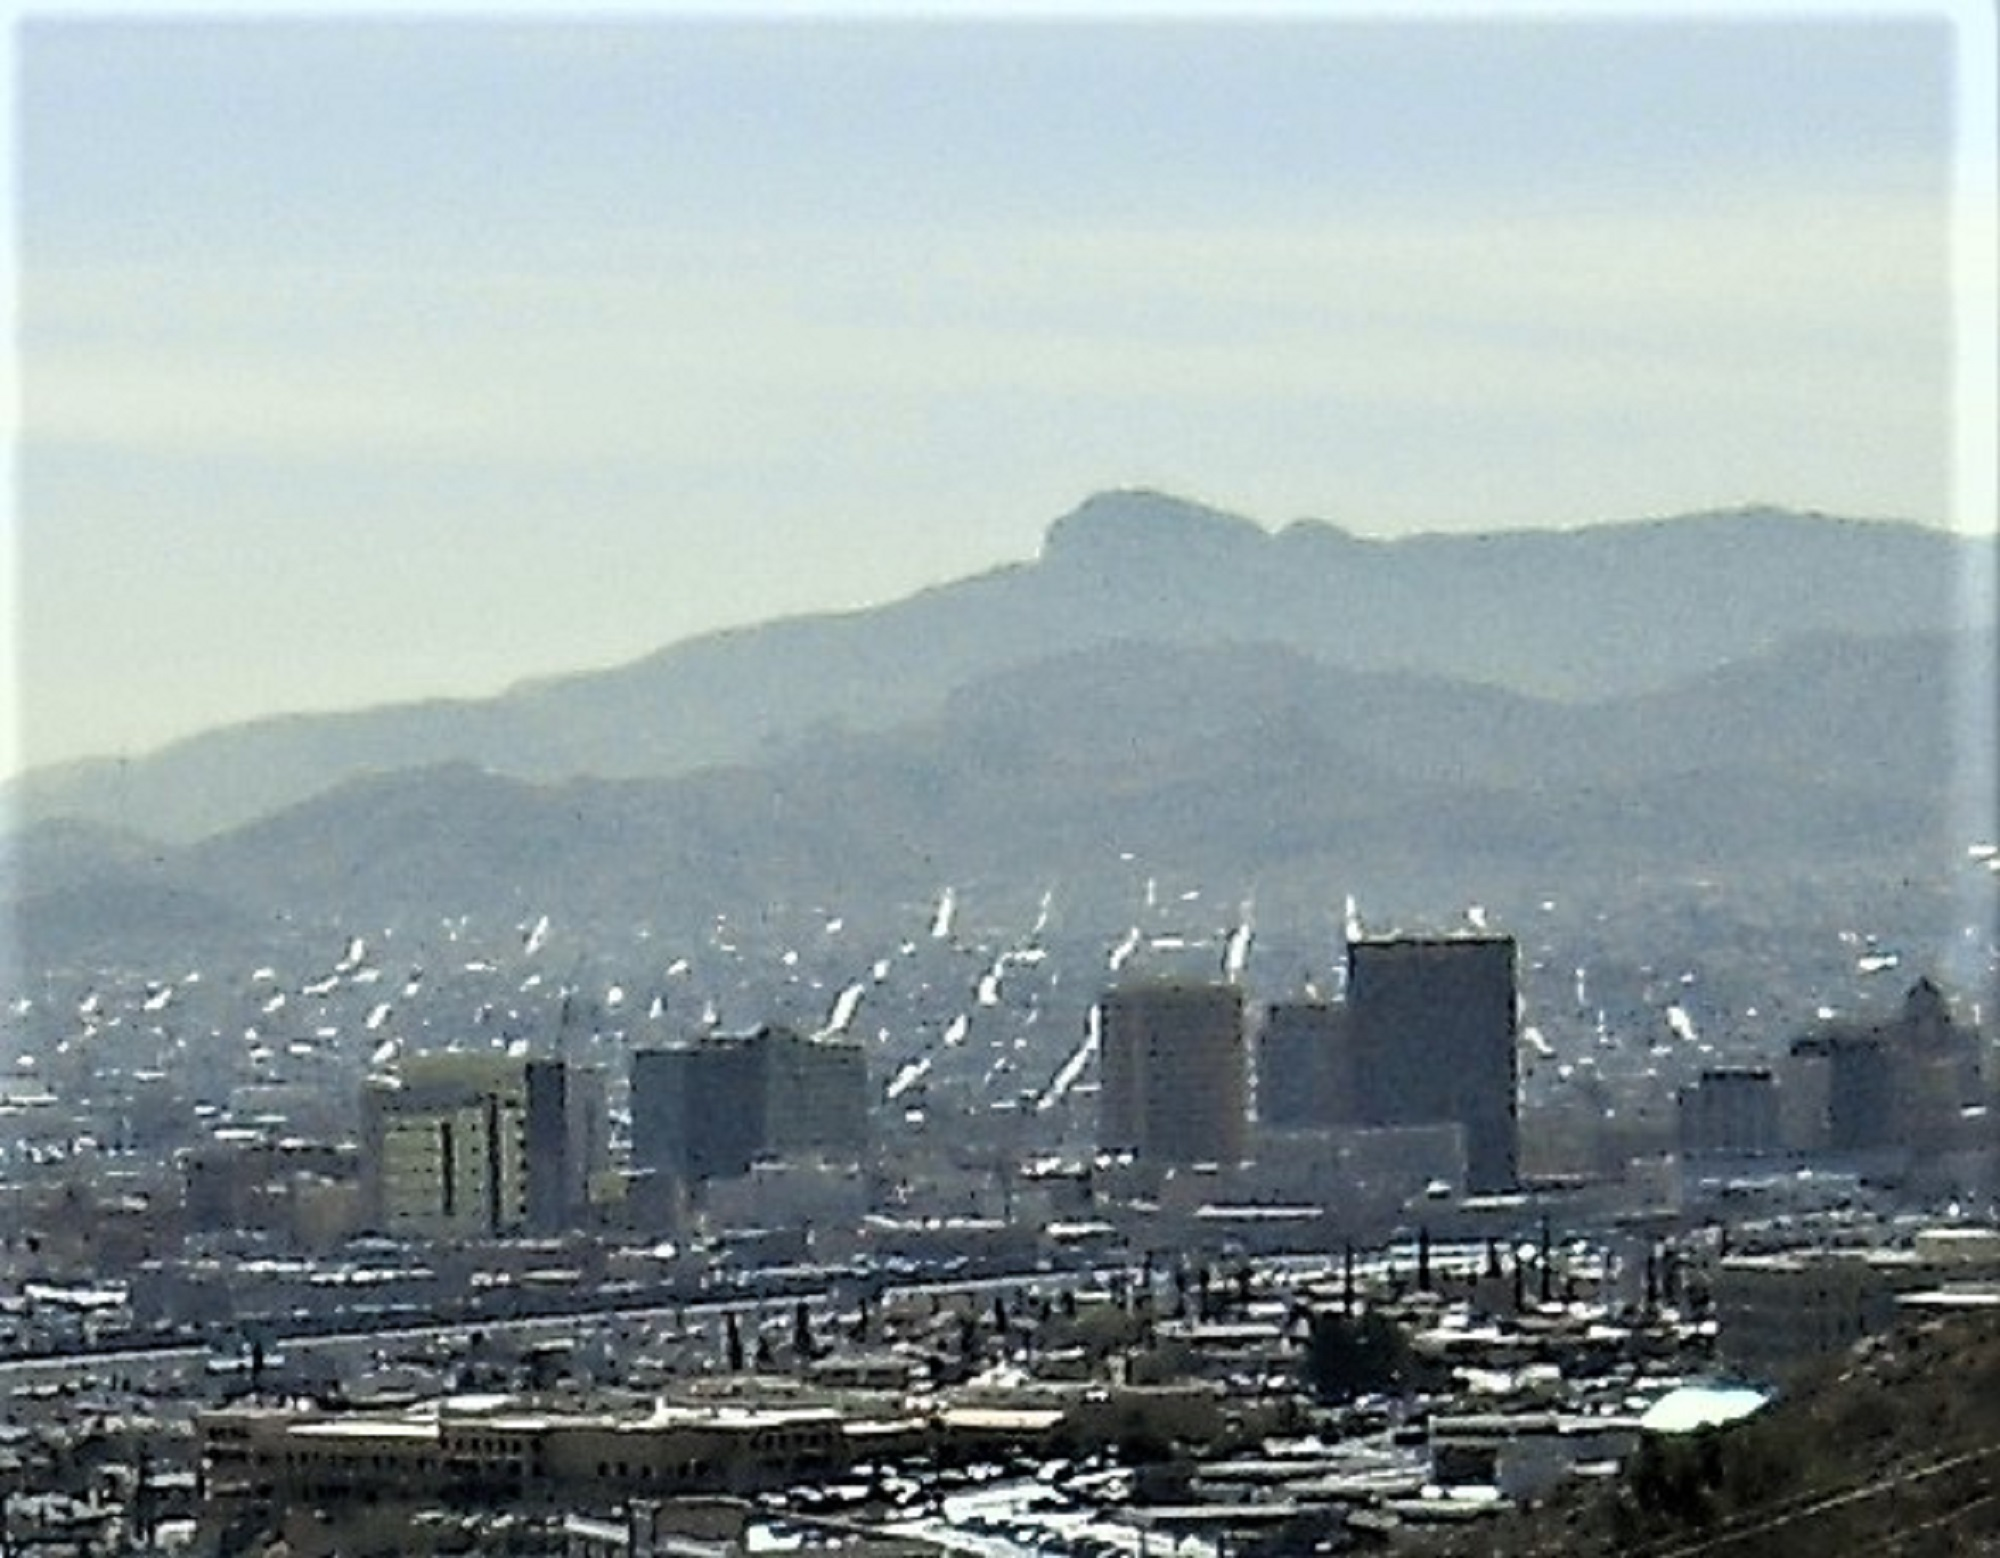 Looking over downtown el paso